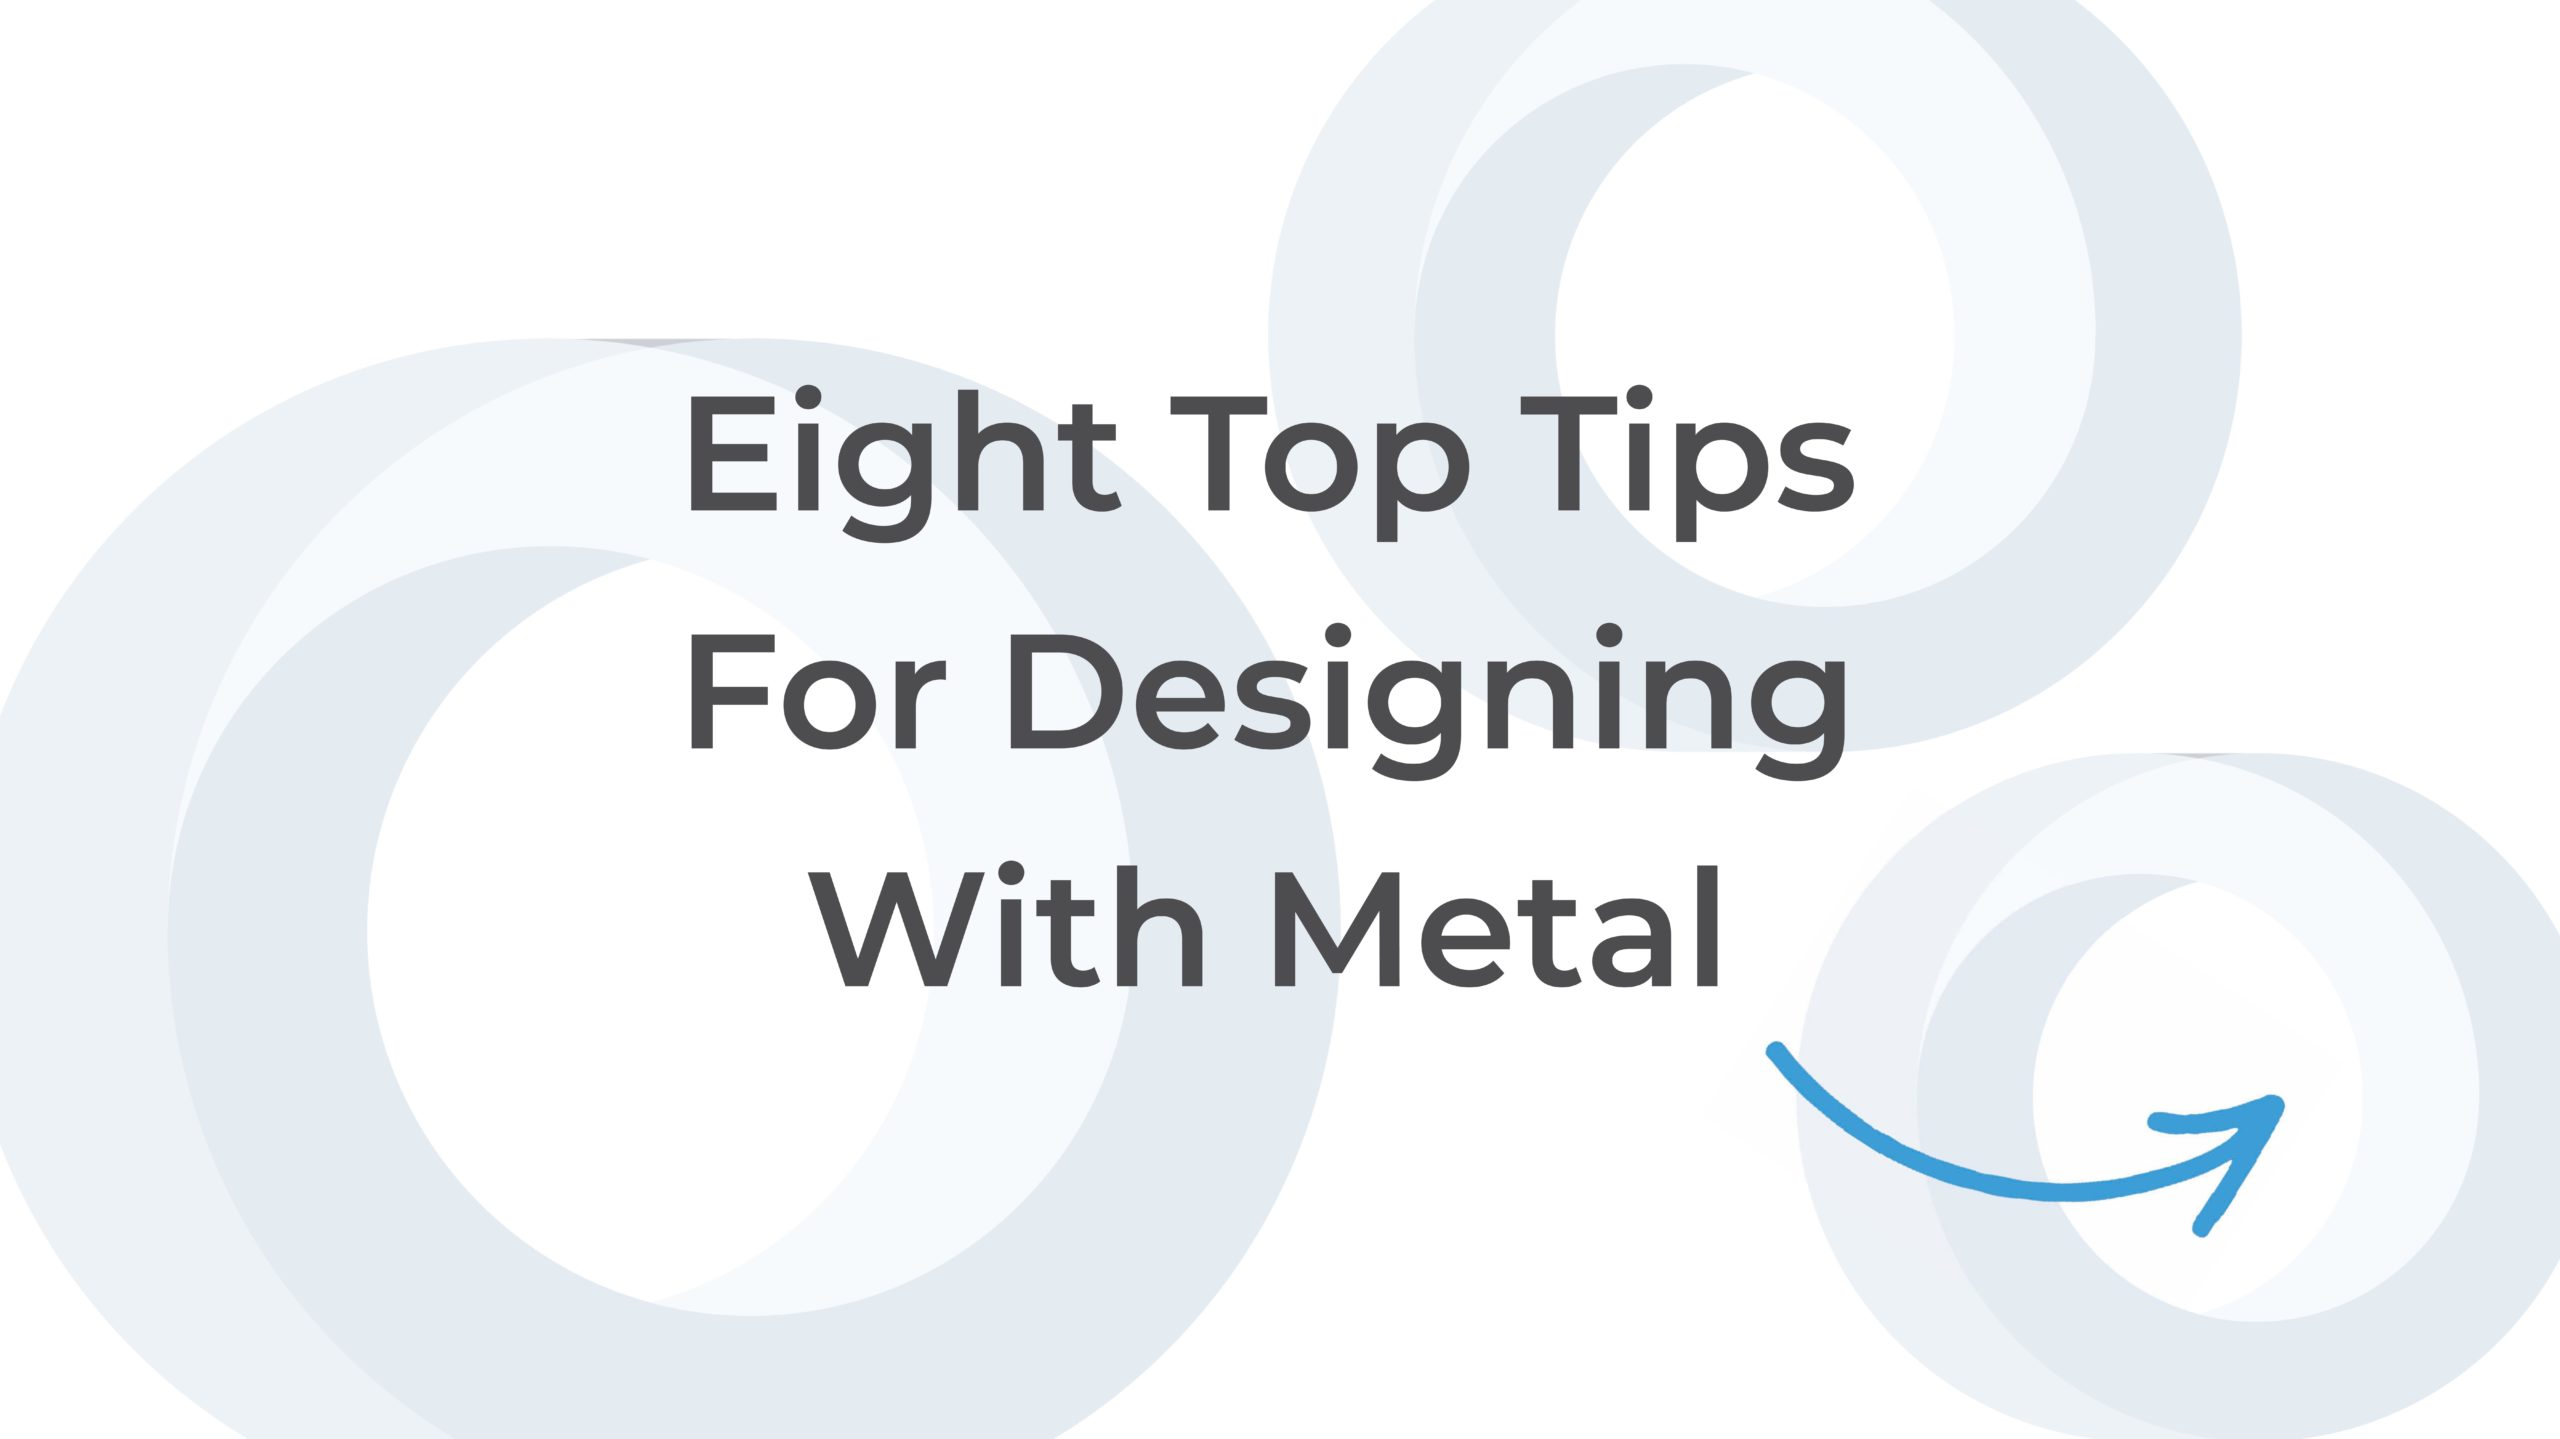 Cover thumbnail reads 8 tips for designing with metal